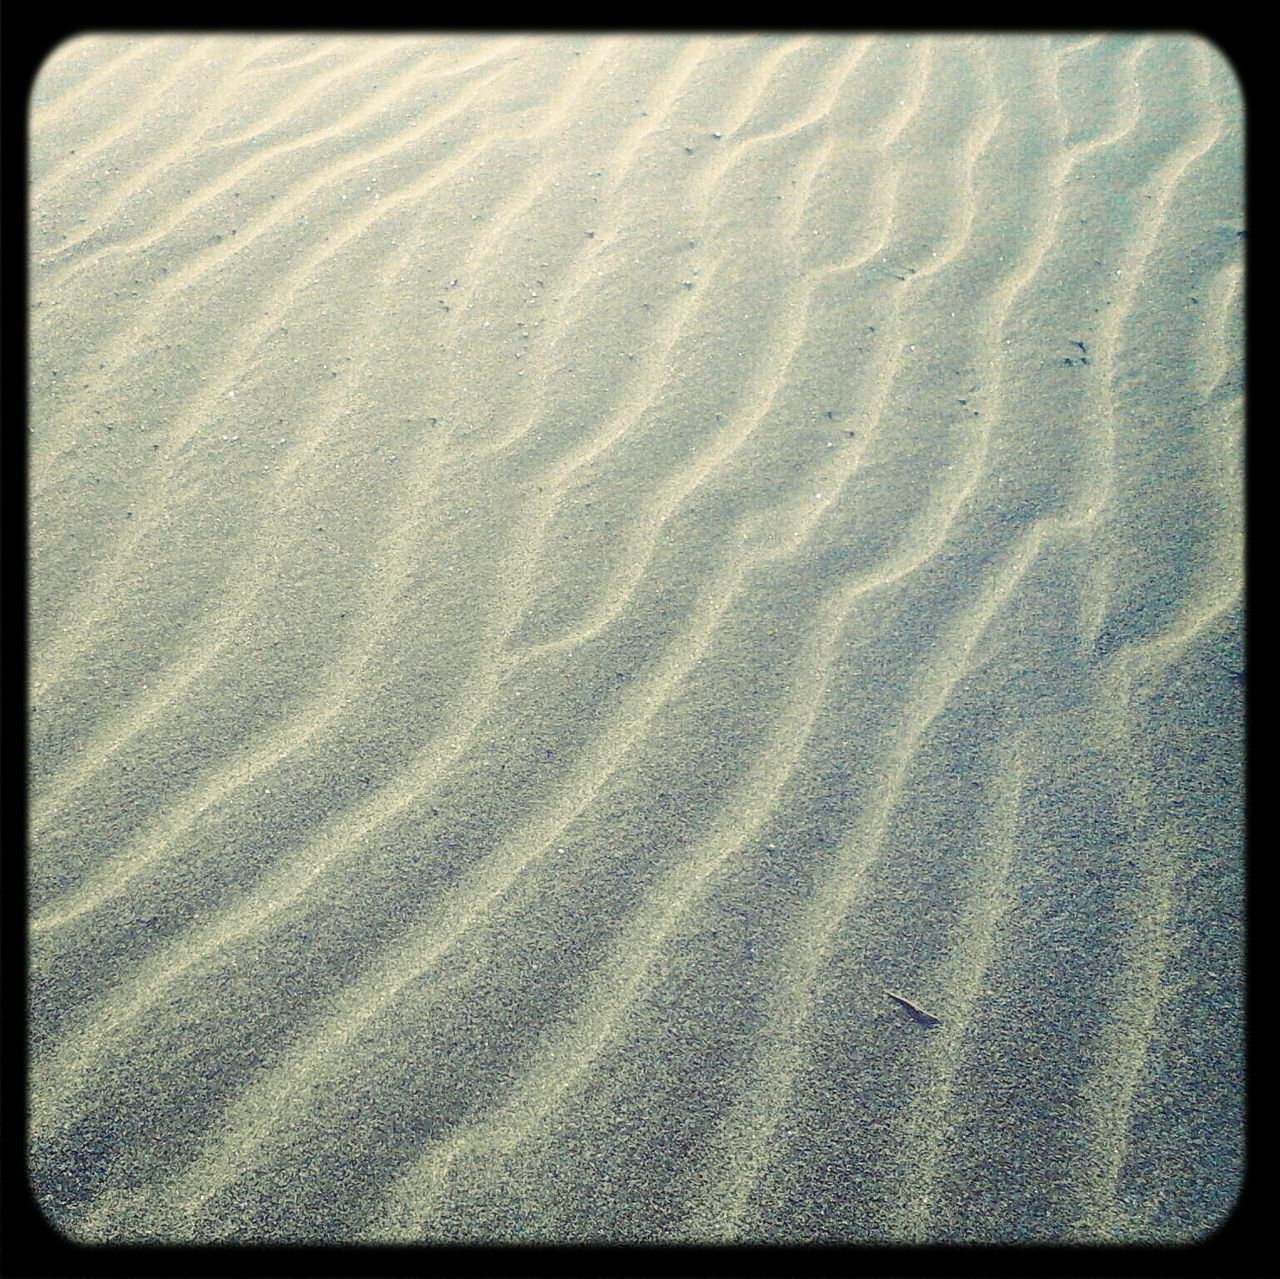 sand, beach, full frame, pattern, backgrounds, nature, no people, day, outdoors, sand dune, close-up